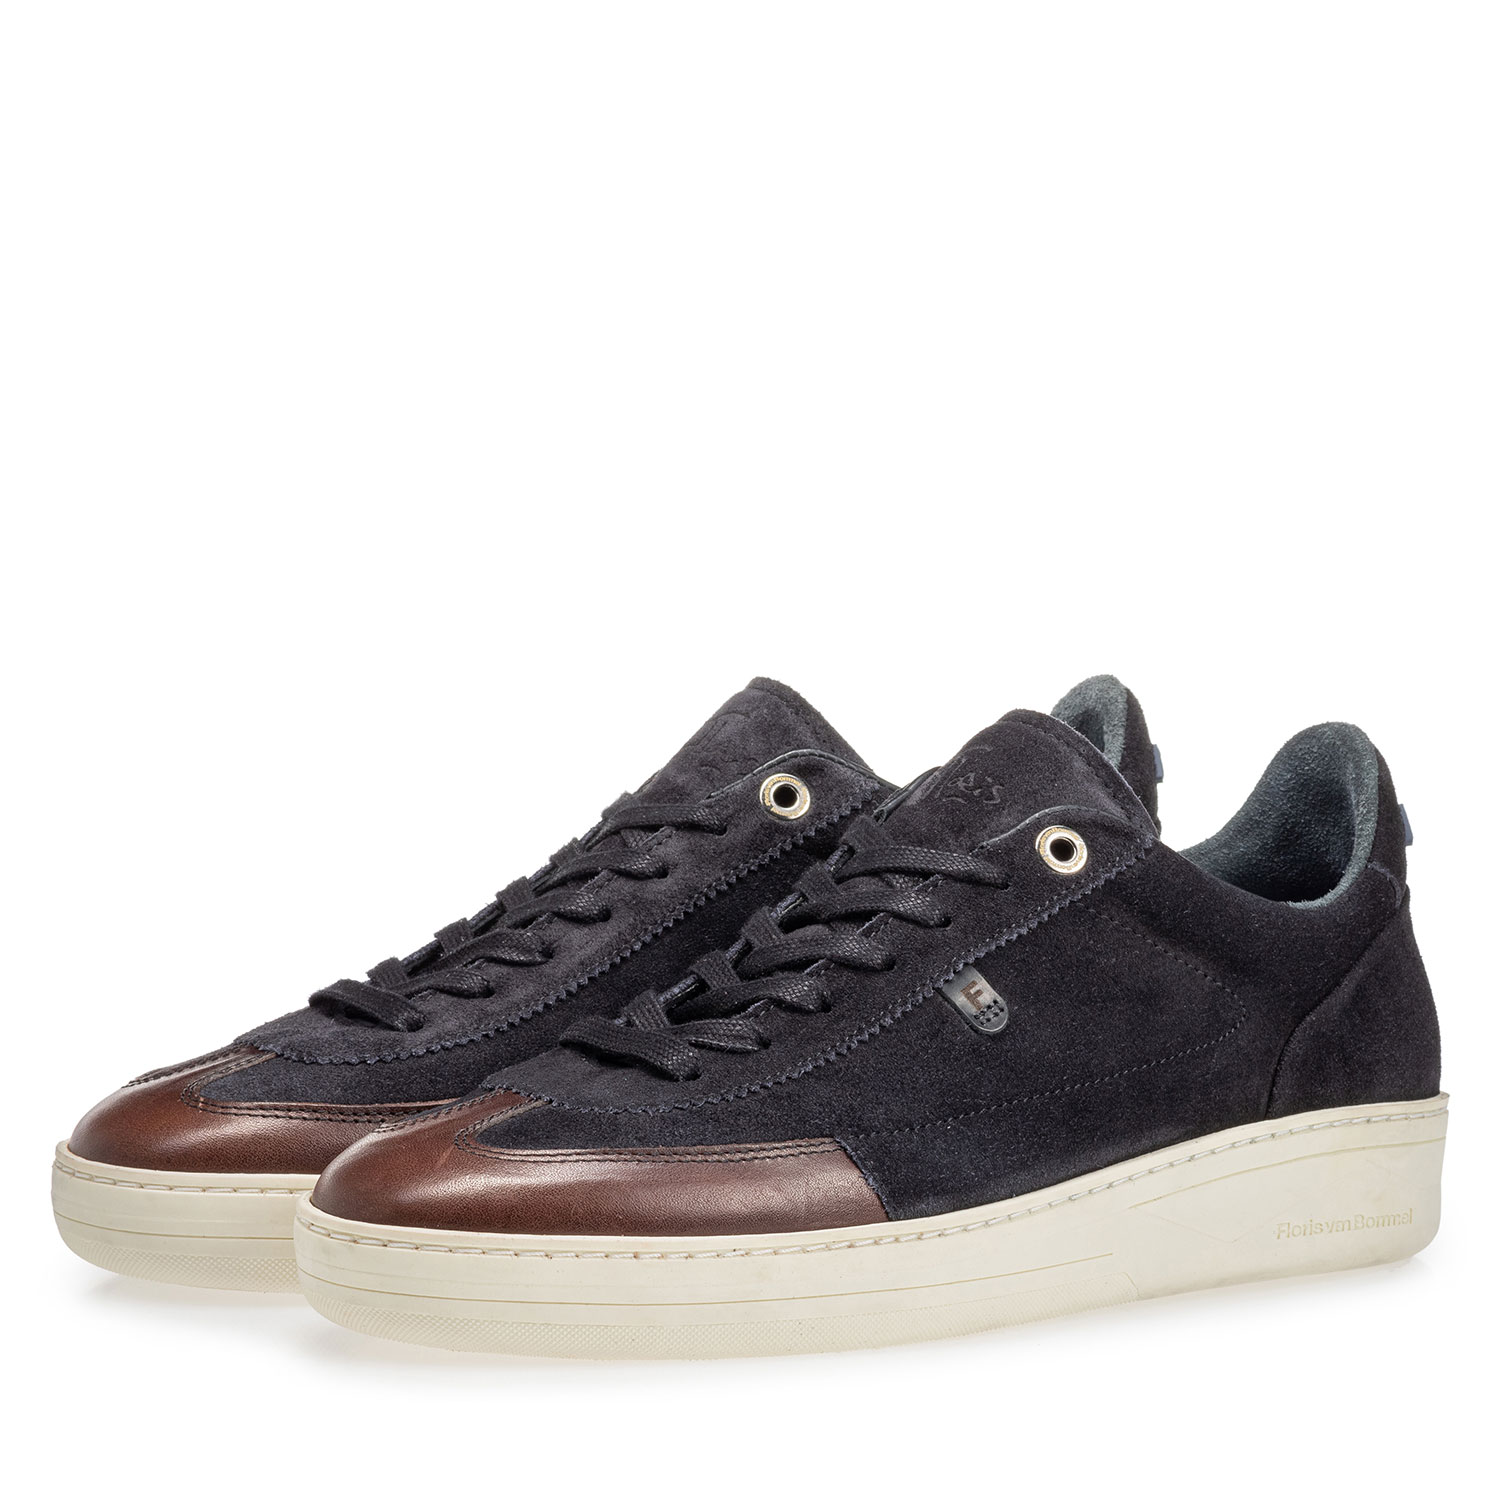 16267/04 - Sneaker suede leather black